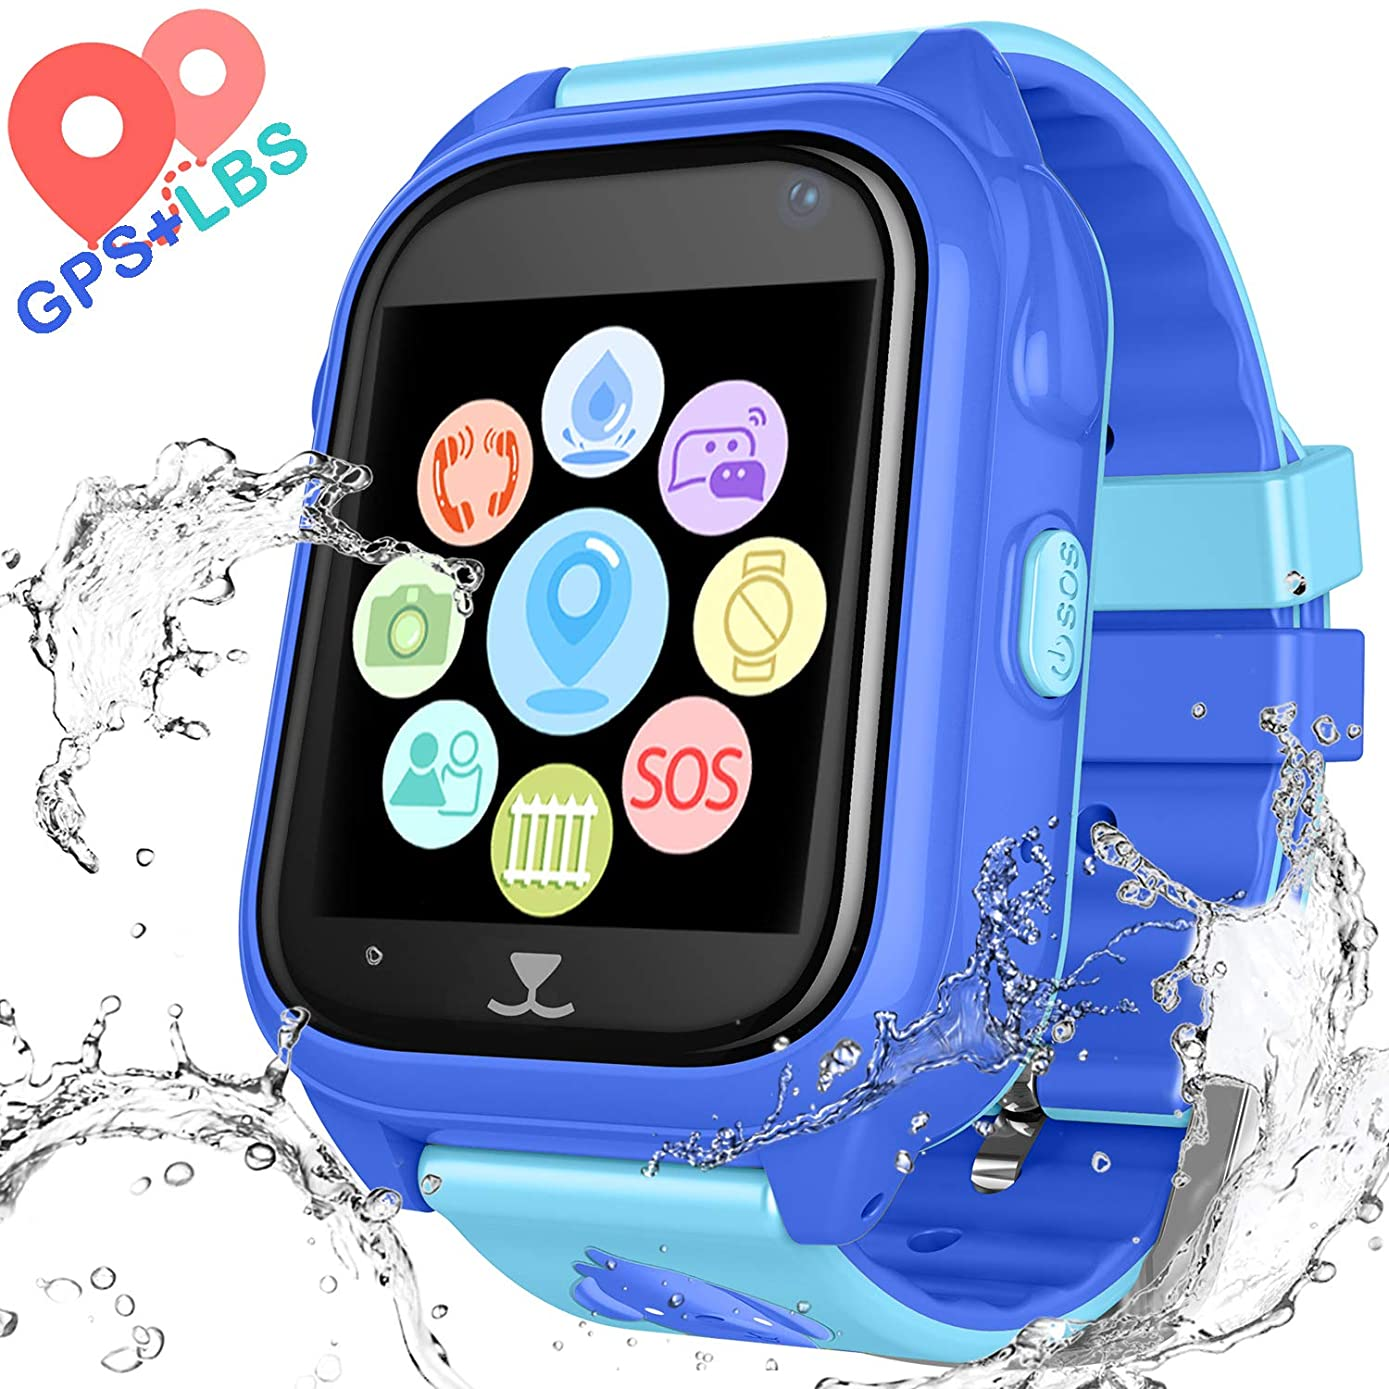 Kids Waterproof Smart Watch Phone - Children Water Resistant GPS Tracker Watch with Call Talkie Walkie Games Sports Wristband for Boys Girls (Blue)